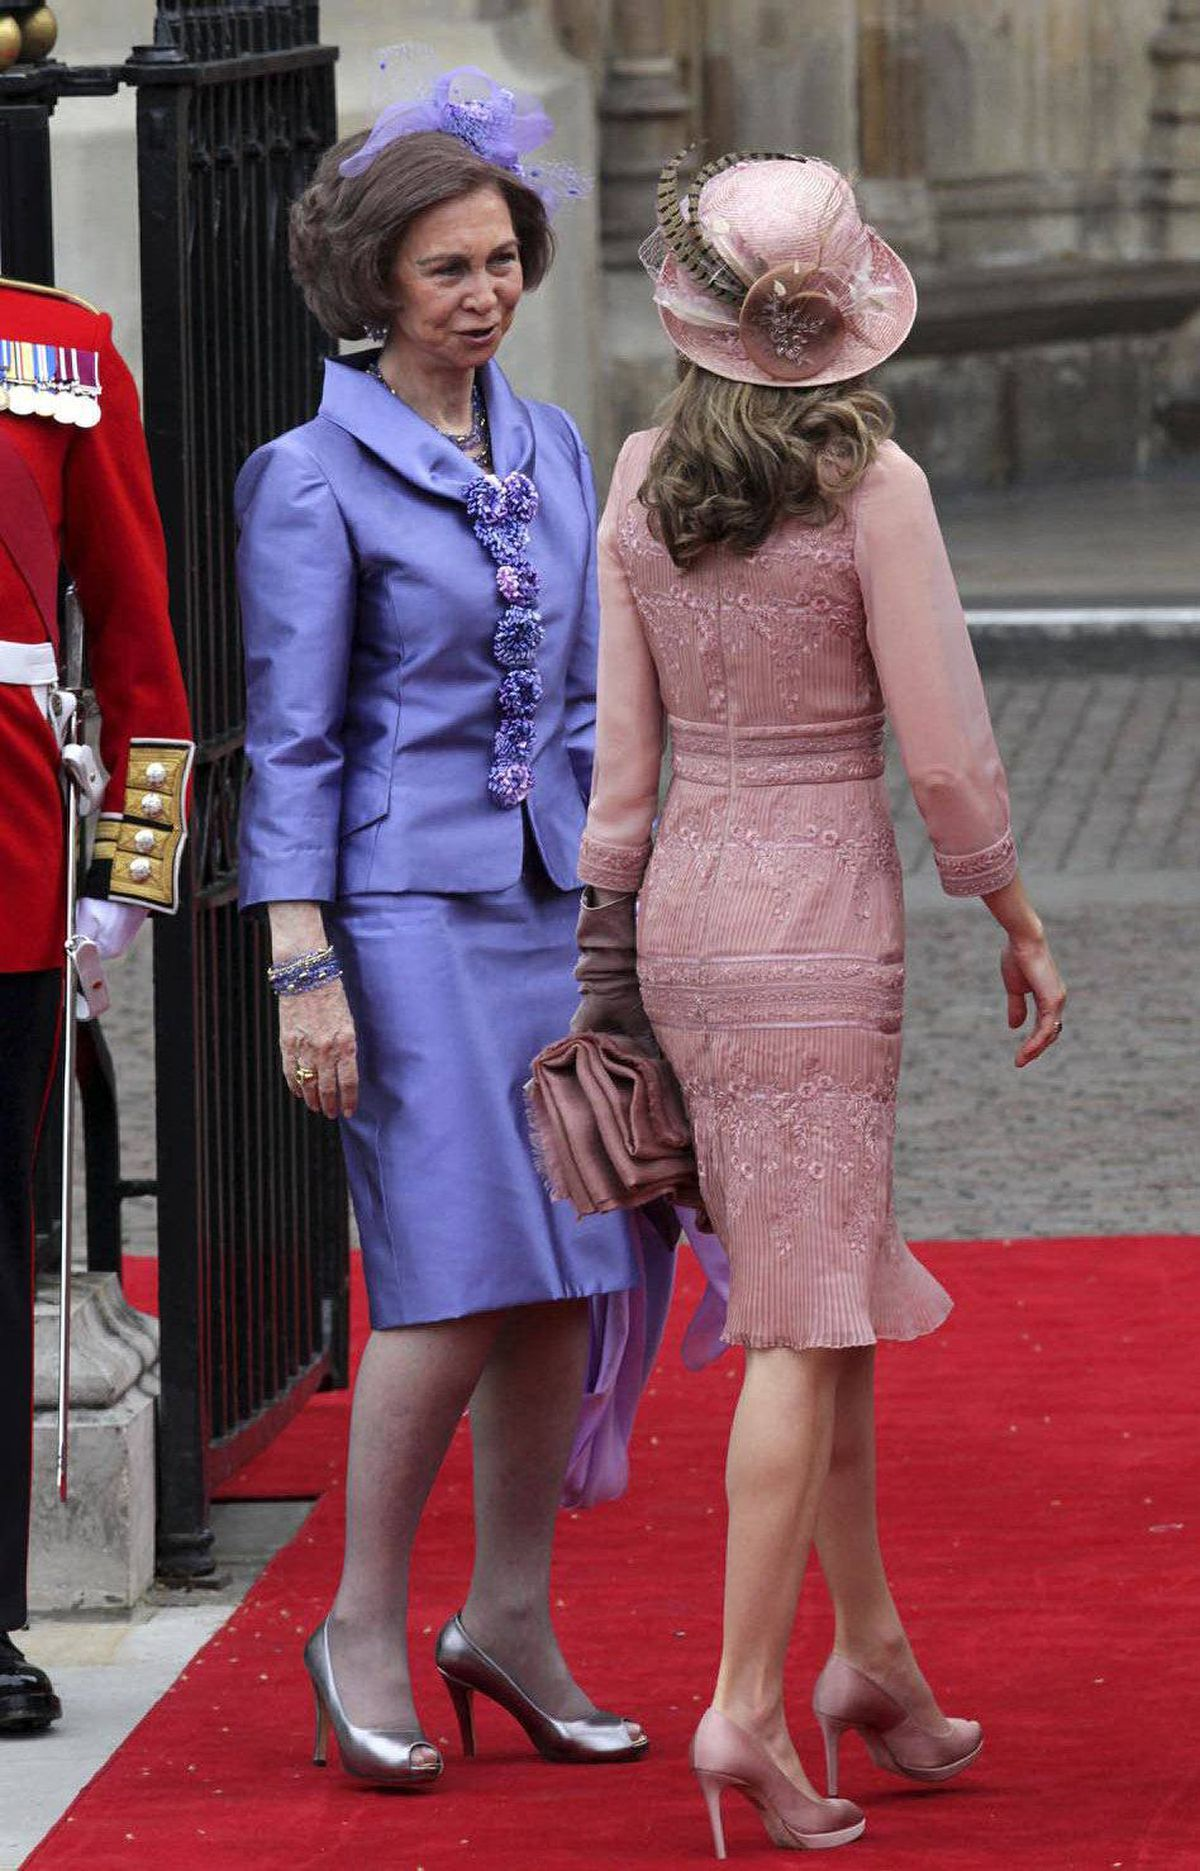 Queen Sofia of Spain and Princess Letizia of Asturias arrive to attend the Royal Wedding of Prince William to Catherine Middleton at Westminster Abbey on April 29, 2011 in London, England.